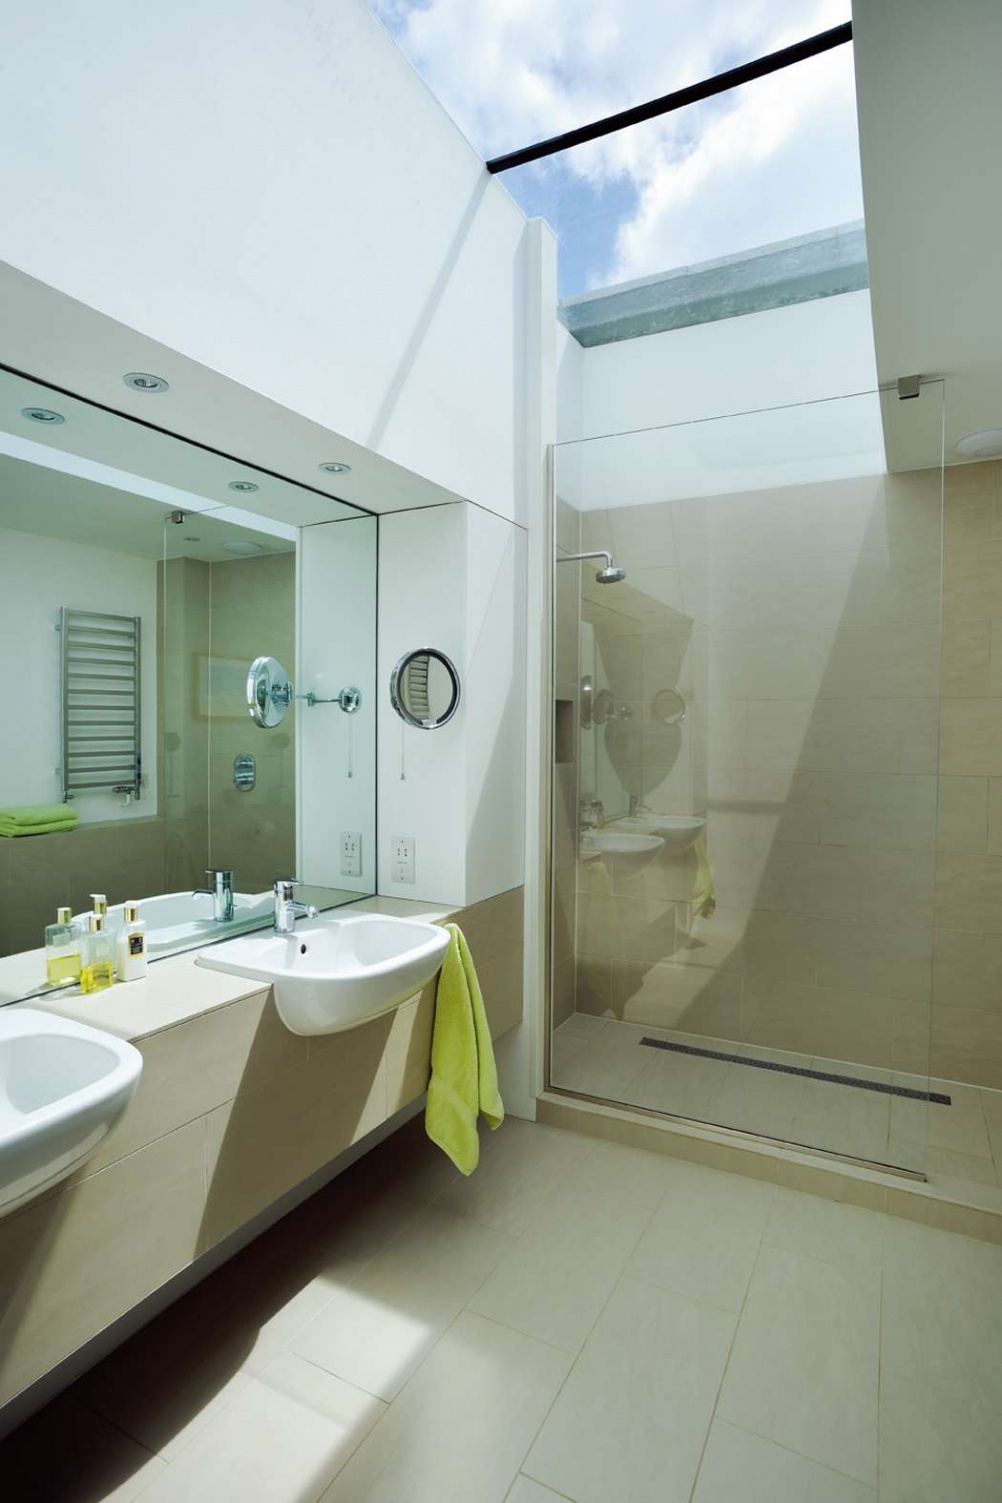 En Suite Bathroom With Roof Light